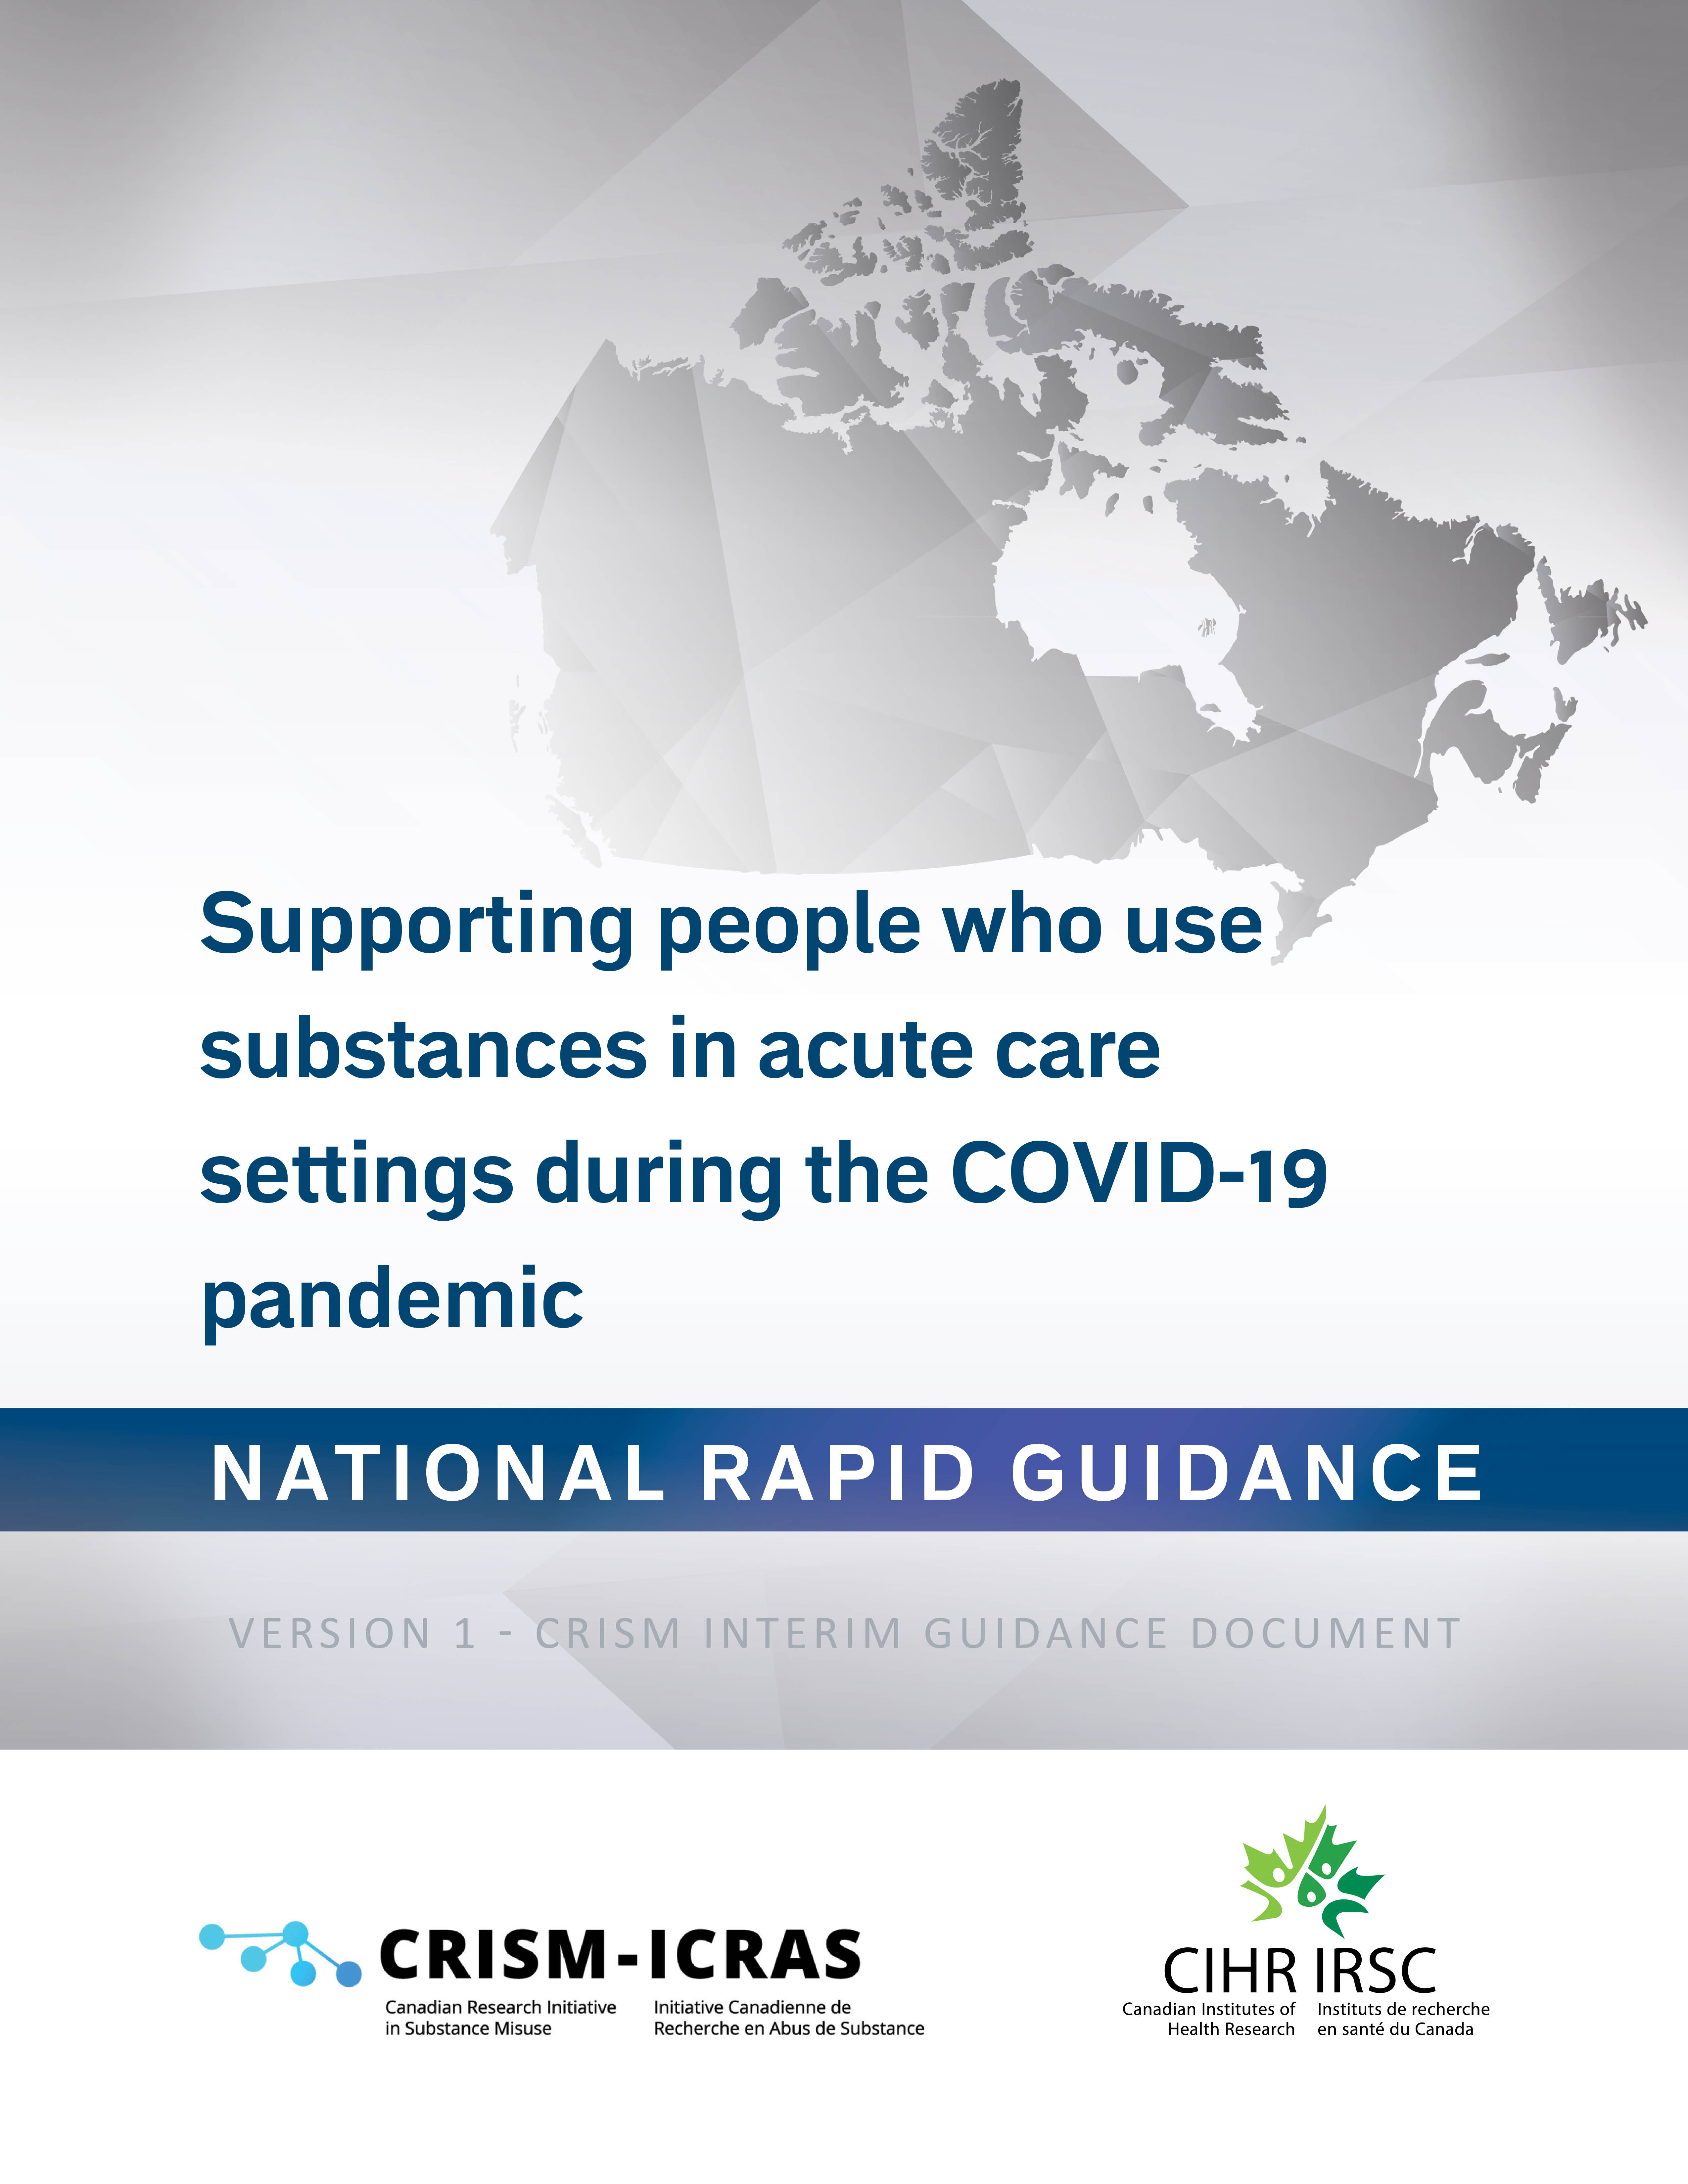 cover-national-rapid-guidance-document-CRISM